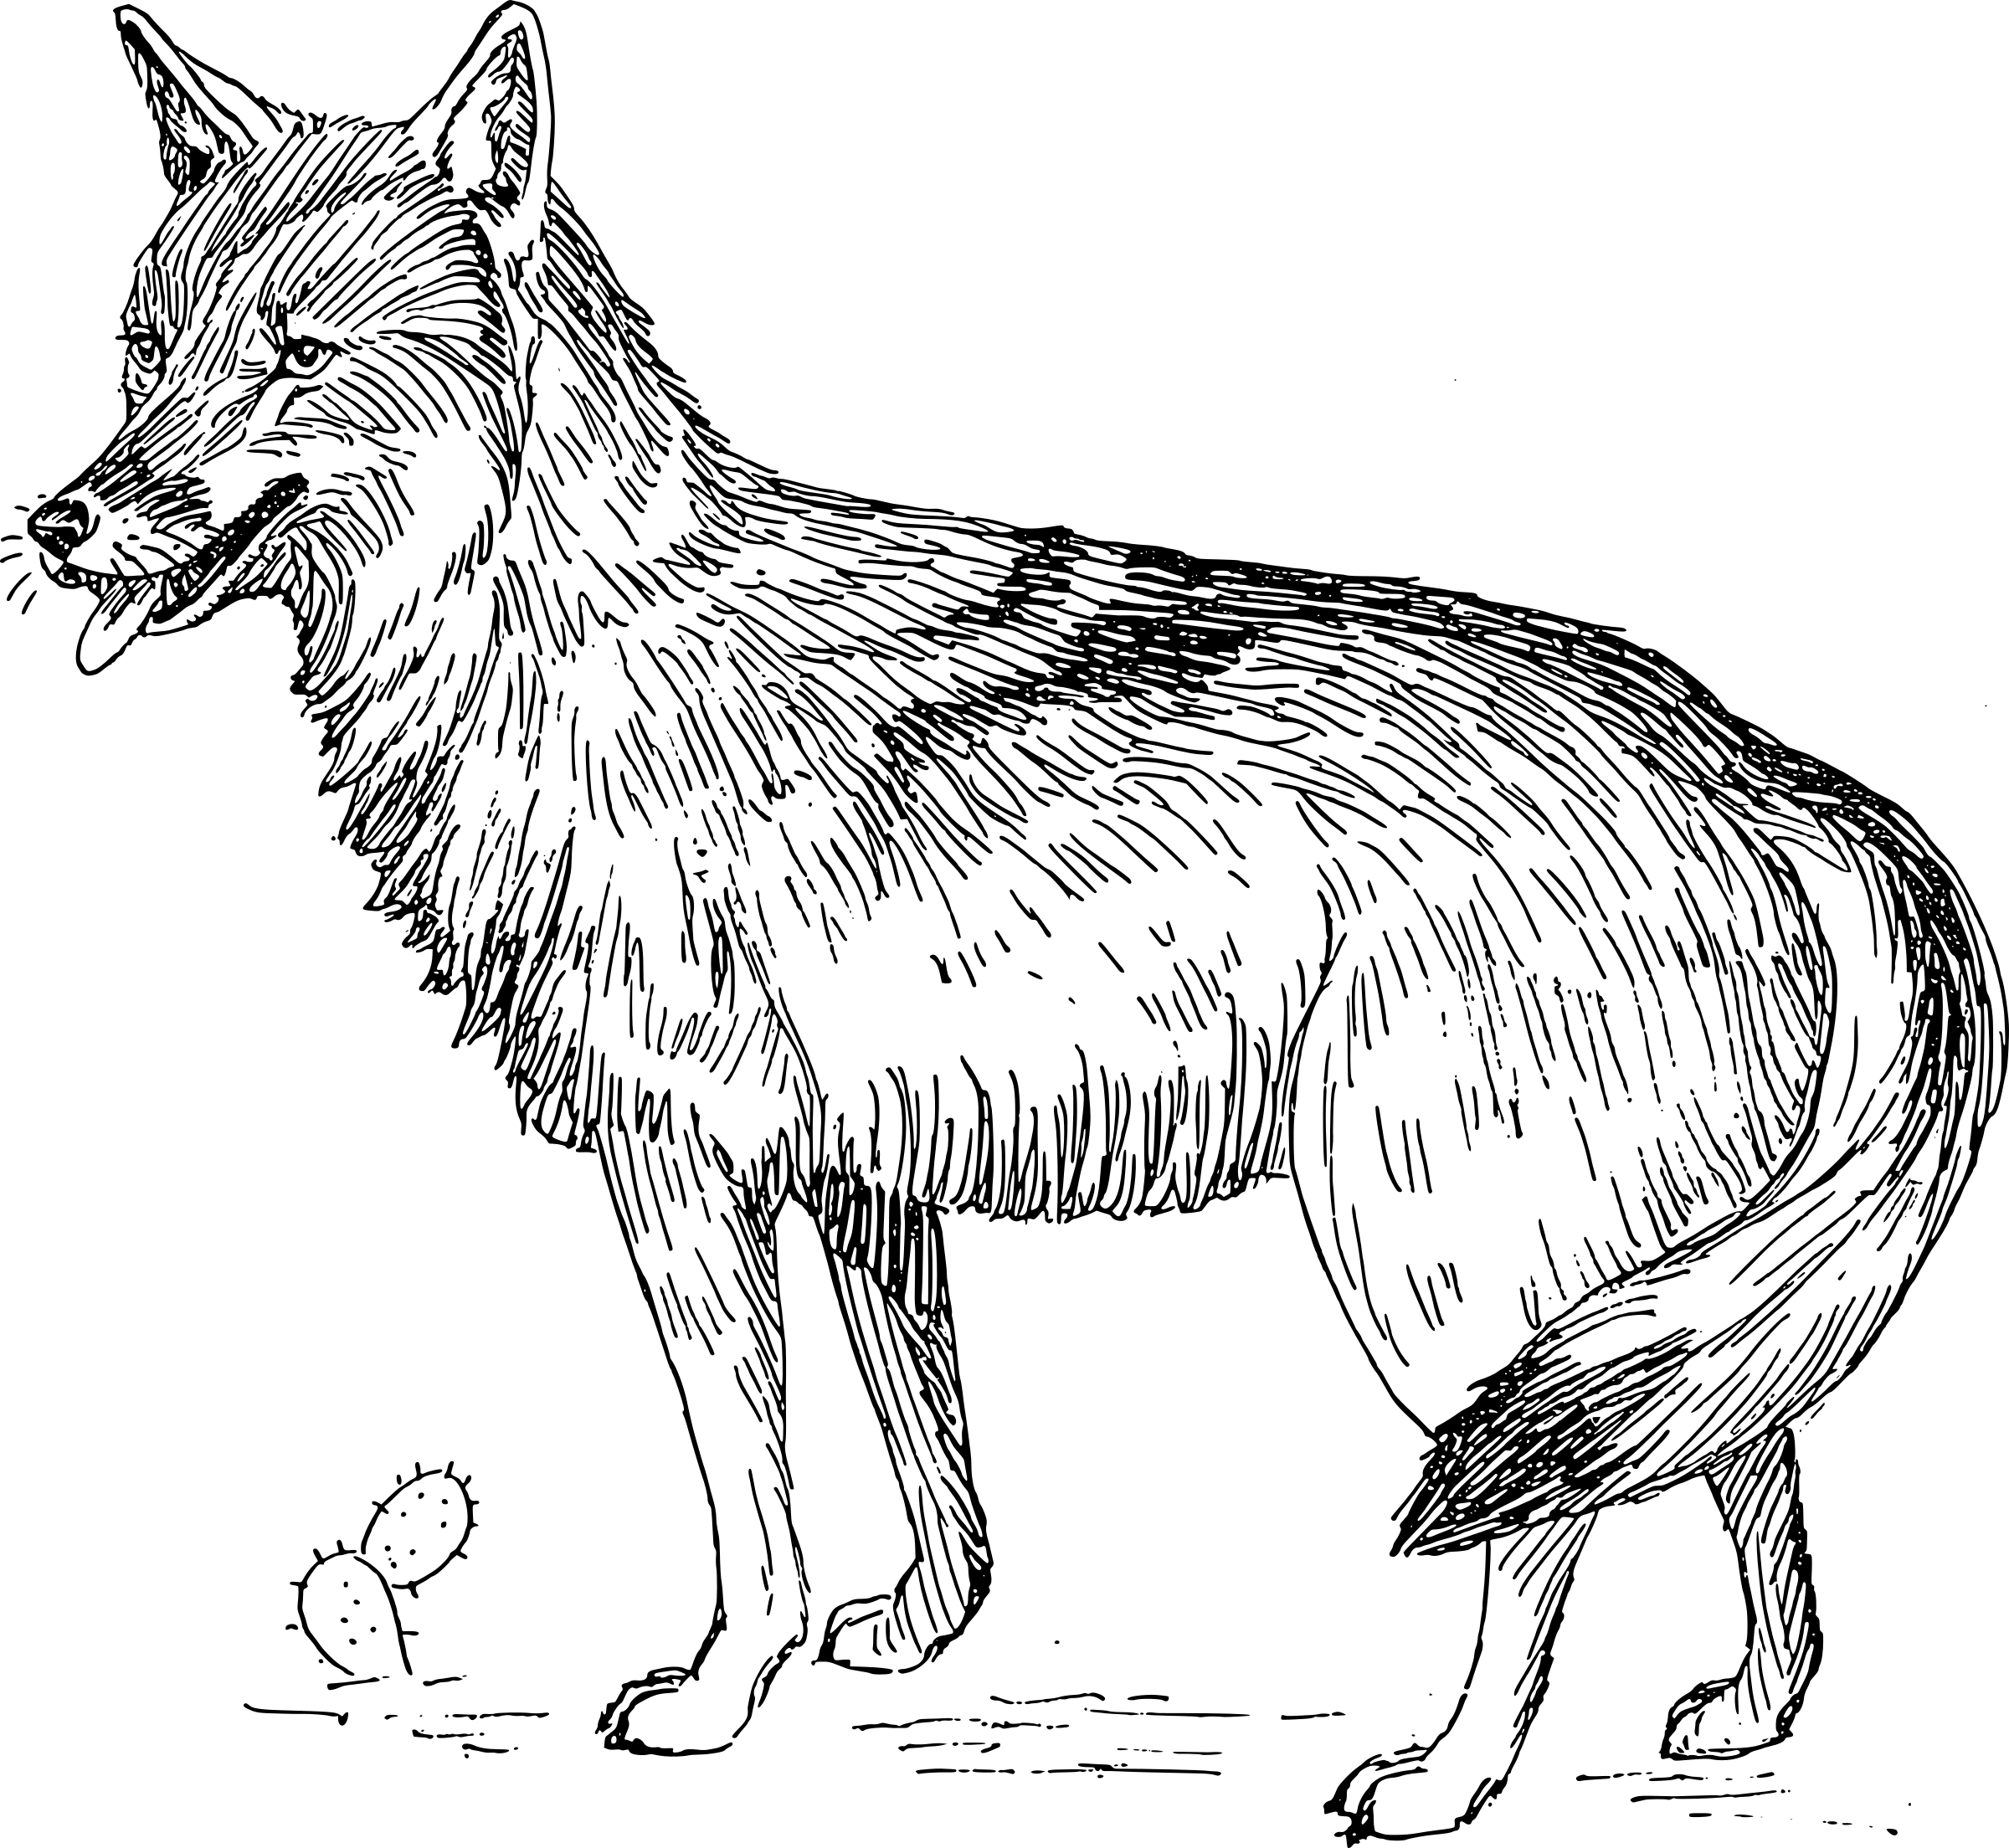 Coyote Clipart Svg Coyote Svg Transparent Free For